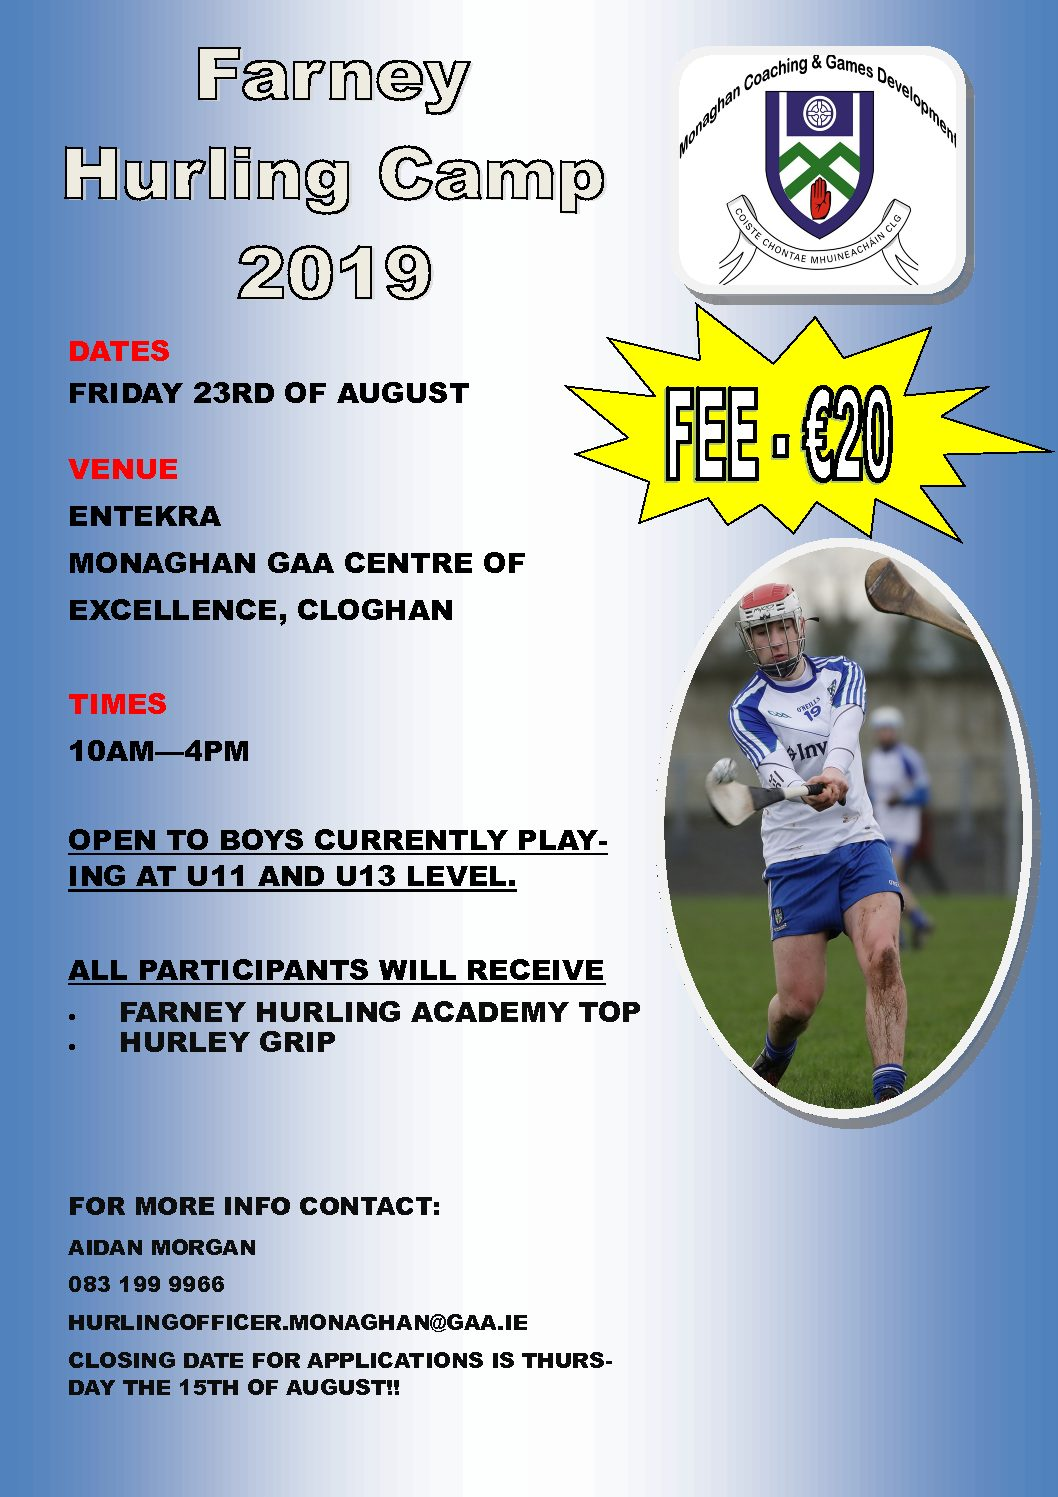 Monaghan Farney Hurling Camp 2019 – 1 Day event on Friday 23rd August…..